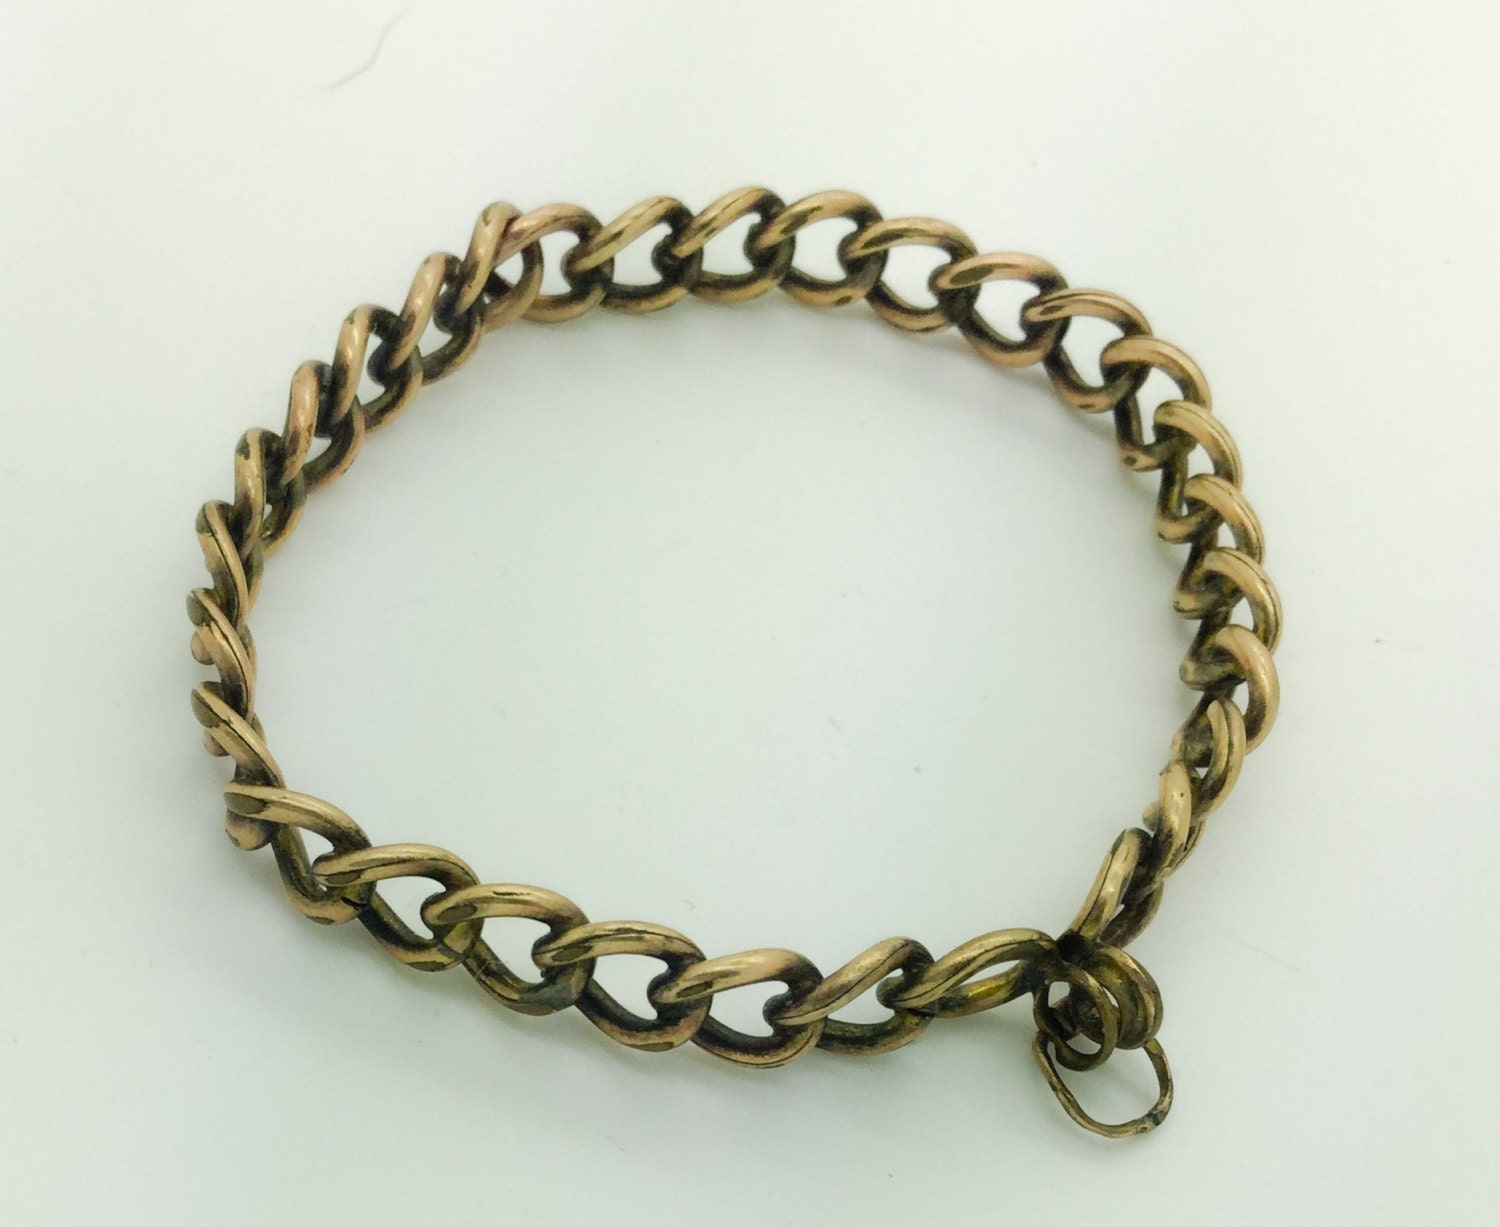 Victorian bracelet or antique tiny dog collar clamp hinged